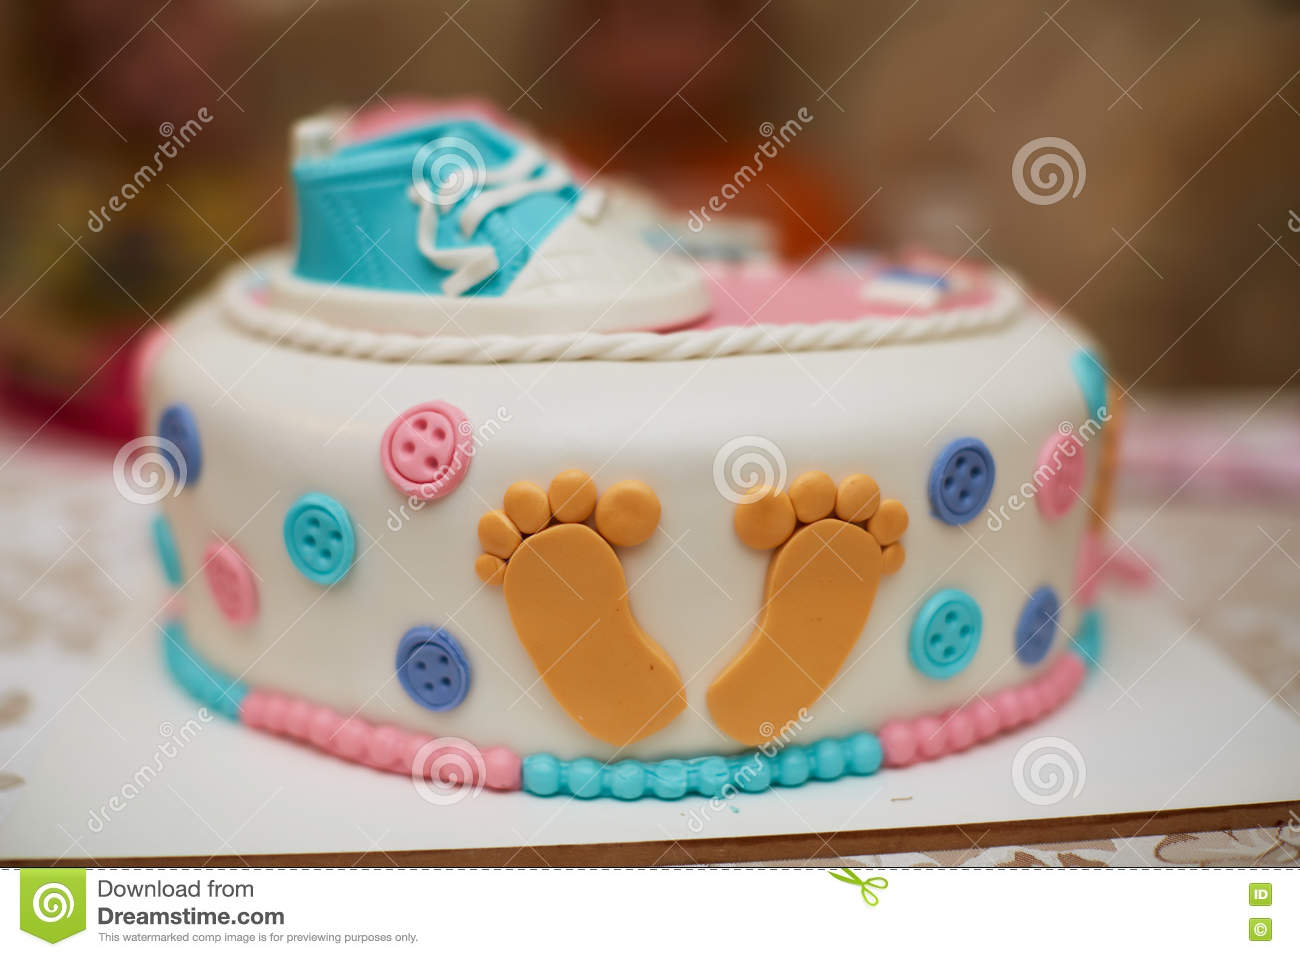 Delicious Birthday Cake On Table Stock Image Image Of Decorated